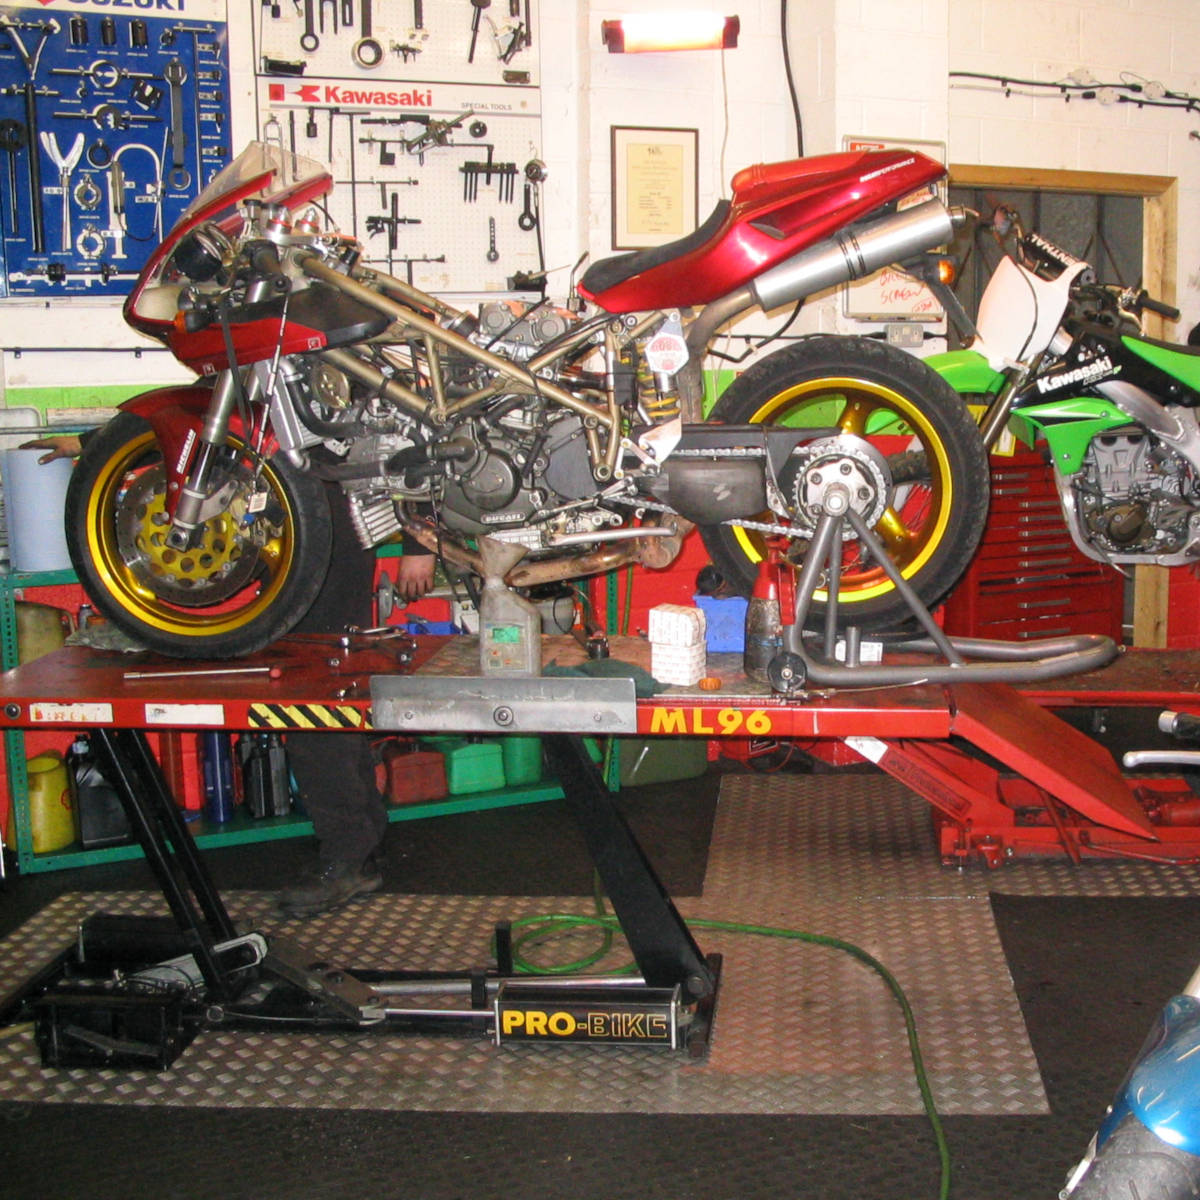 Full Range of Services: For a full range of services on a wide variety of bikes, you can count on GP Performance